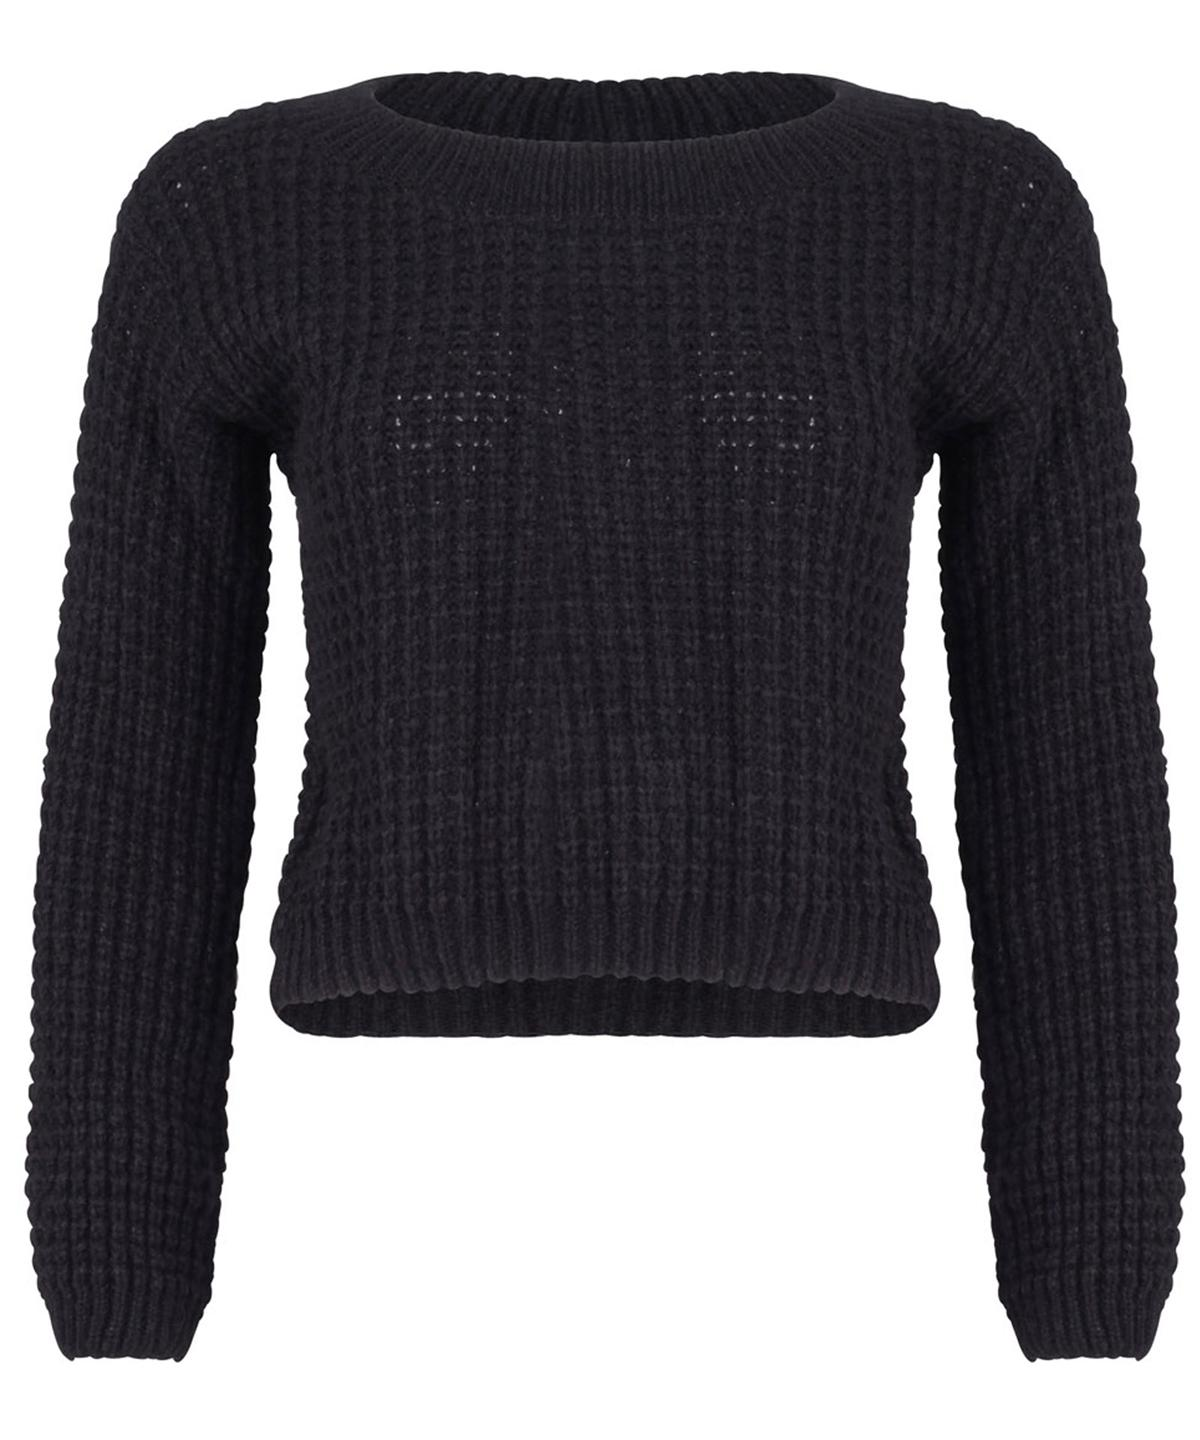 NEW Womens Ladies Waffle Cable Knit Cropped Long Sleeve JUMPER Sweater 8 10 12 1